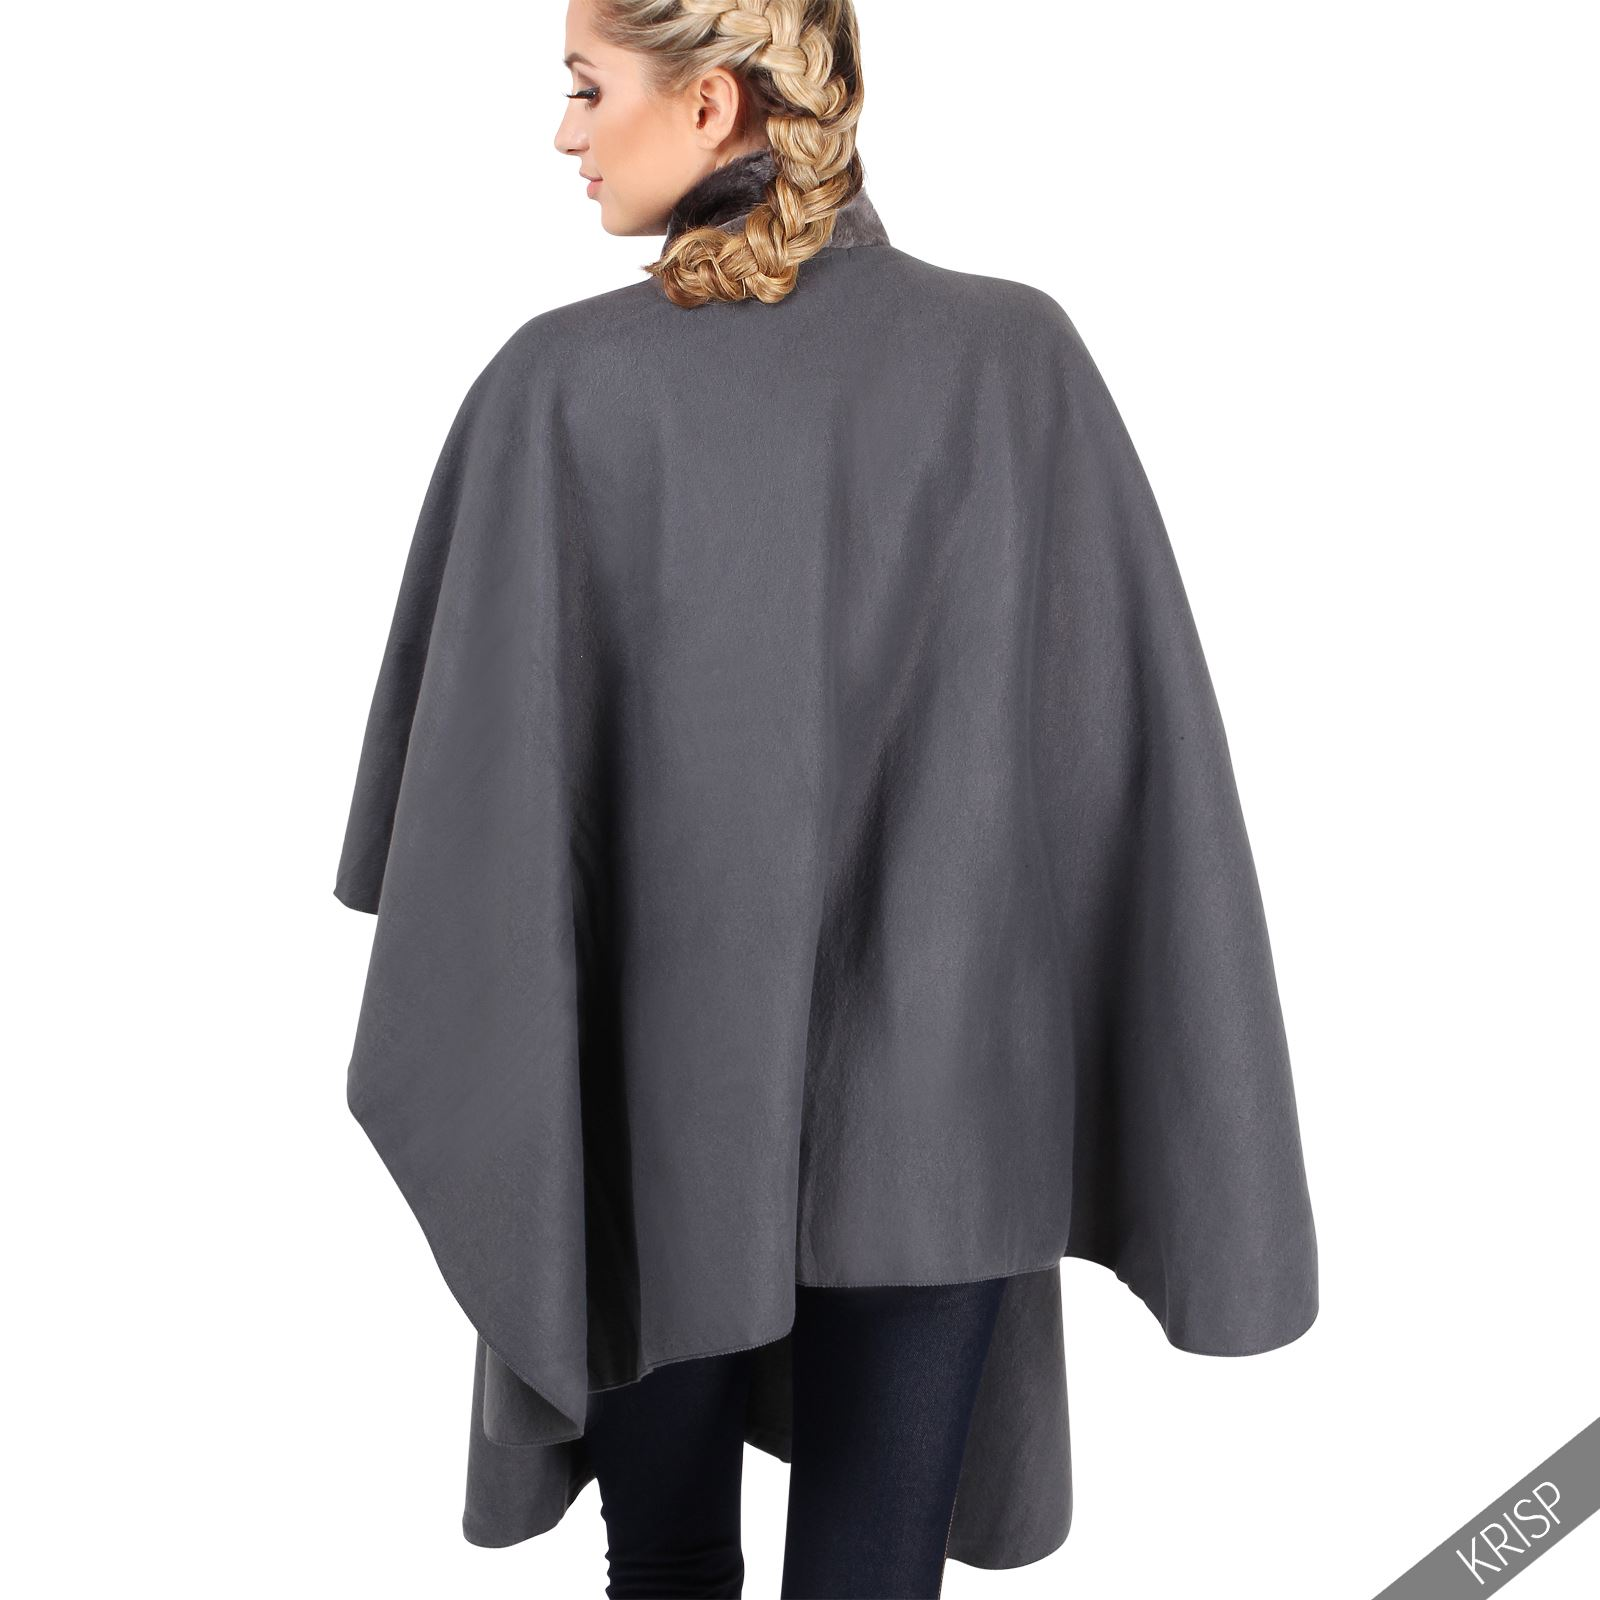 damen fleece poncho mit kunstpelz kragen cape mantel jacke. Black Bedroom Furniture Sets. Home Design Ideas